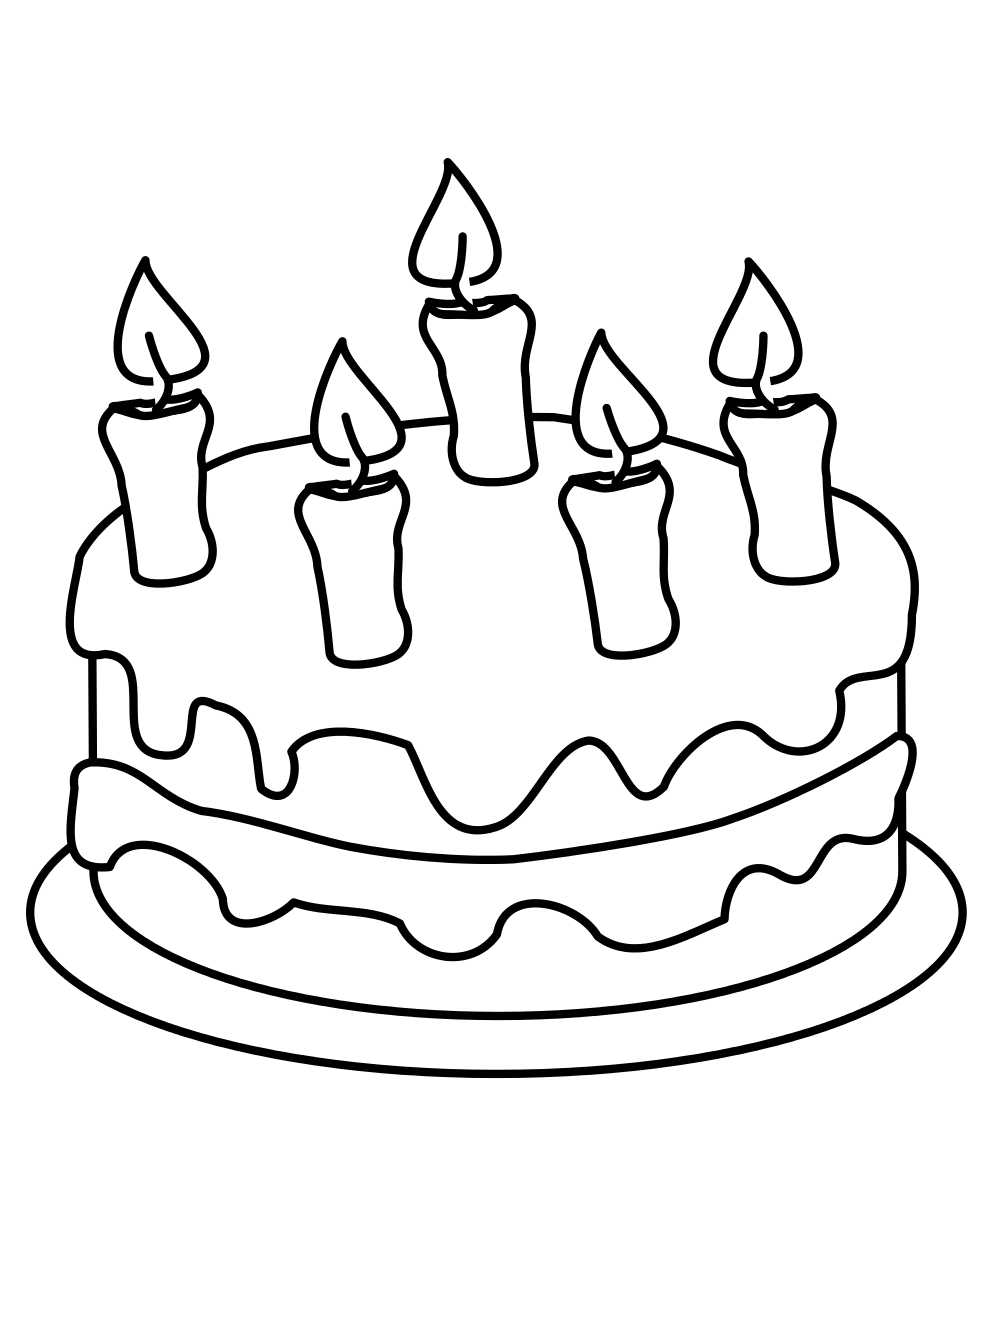 1000x1333 FileDraw this birthday cake.svg